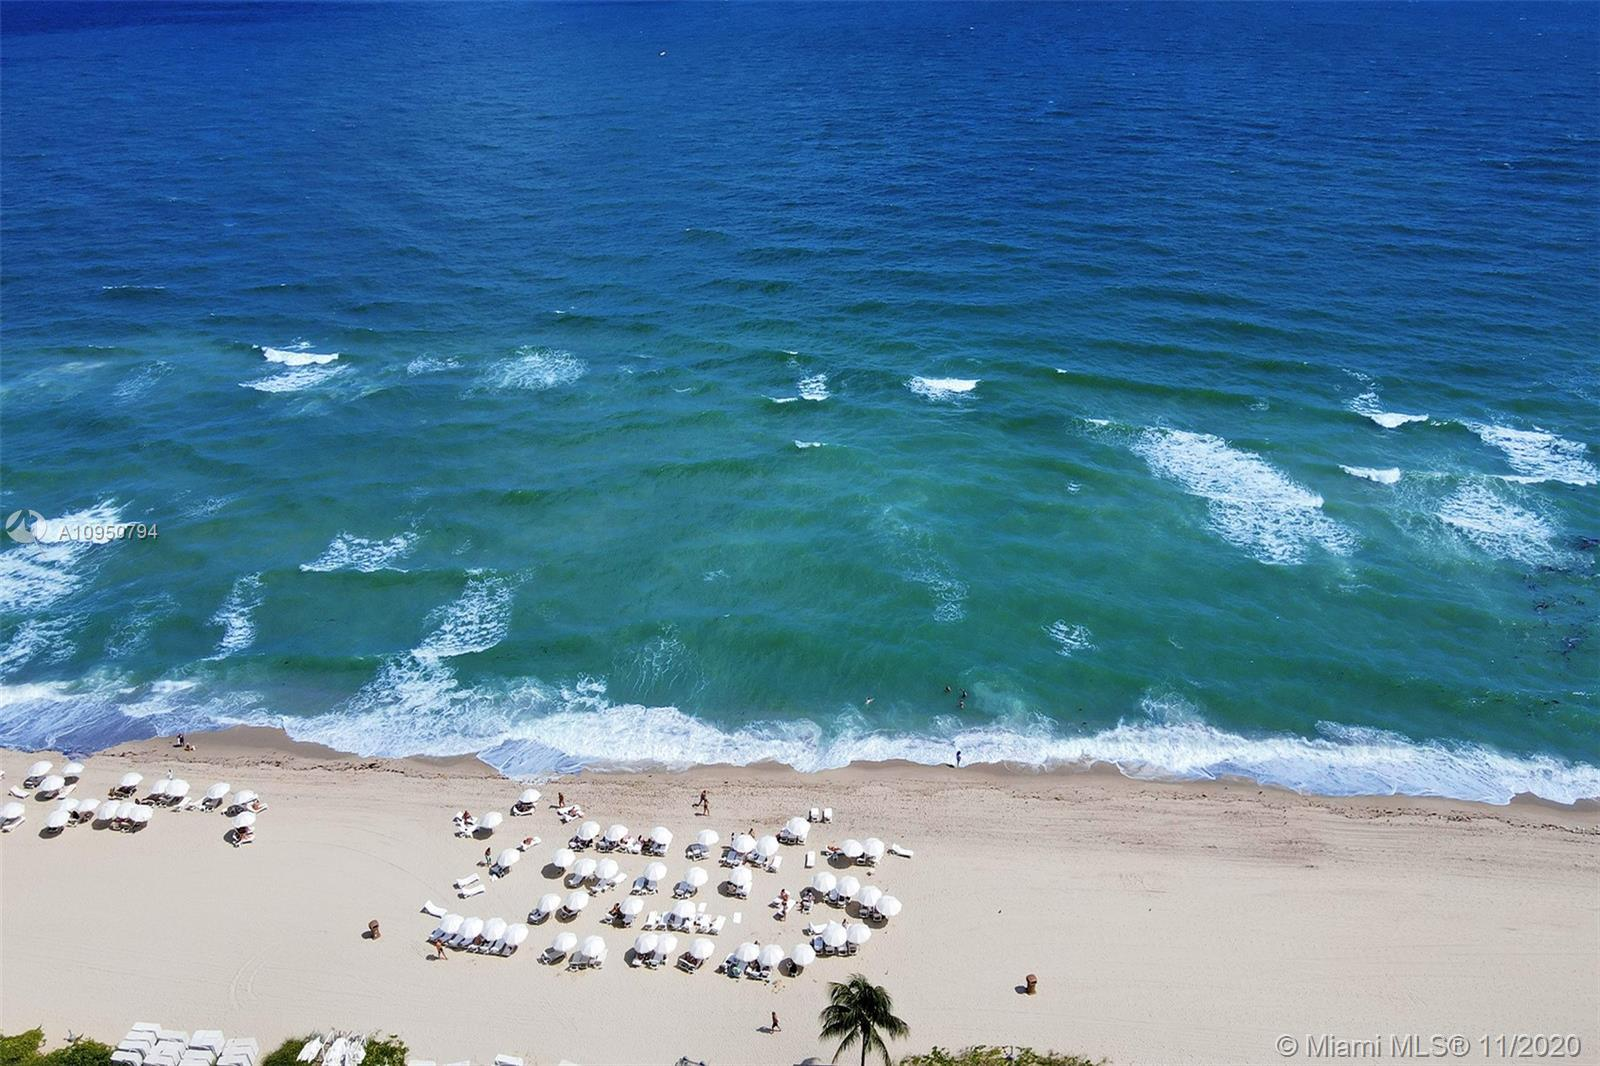 OWN TWO ADJOINING OCEANFRONT SPECTACULAR UNITS IN 5 STAR CONDO HOTEL ON SUNNY ISLES BEACH! GREAT INV